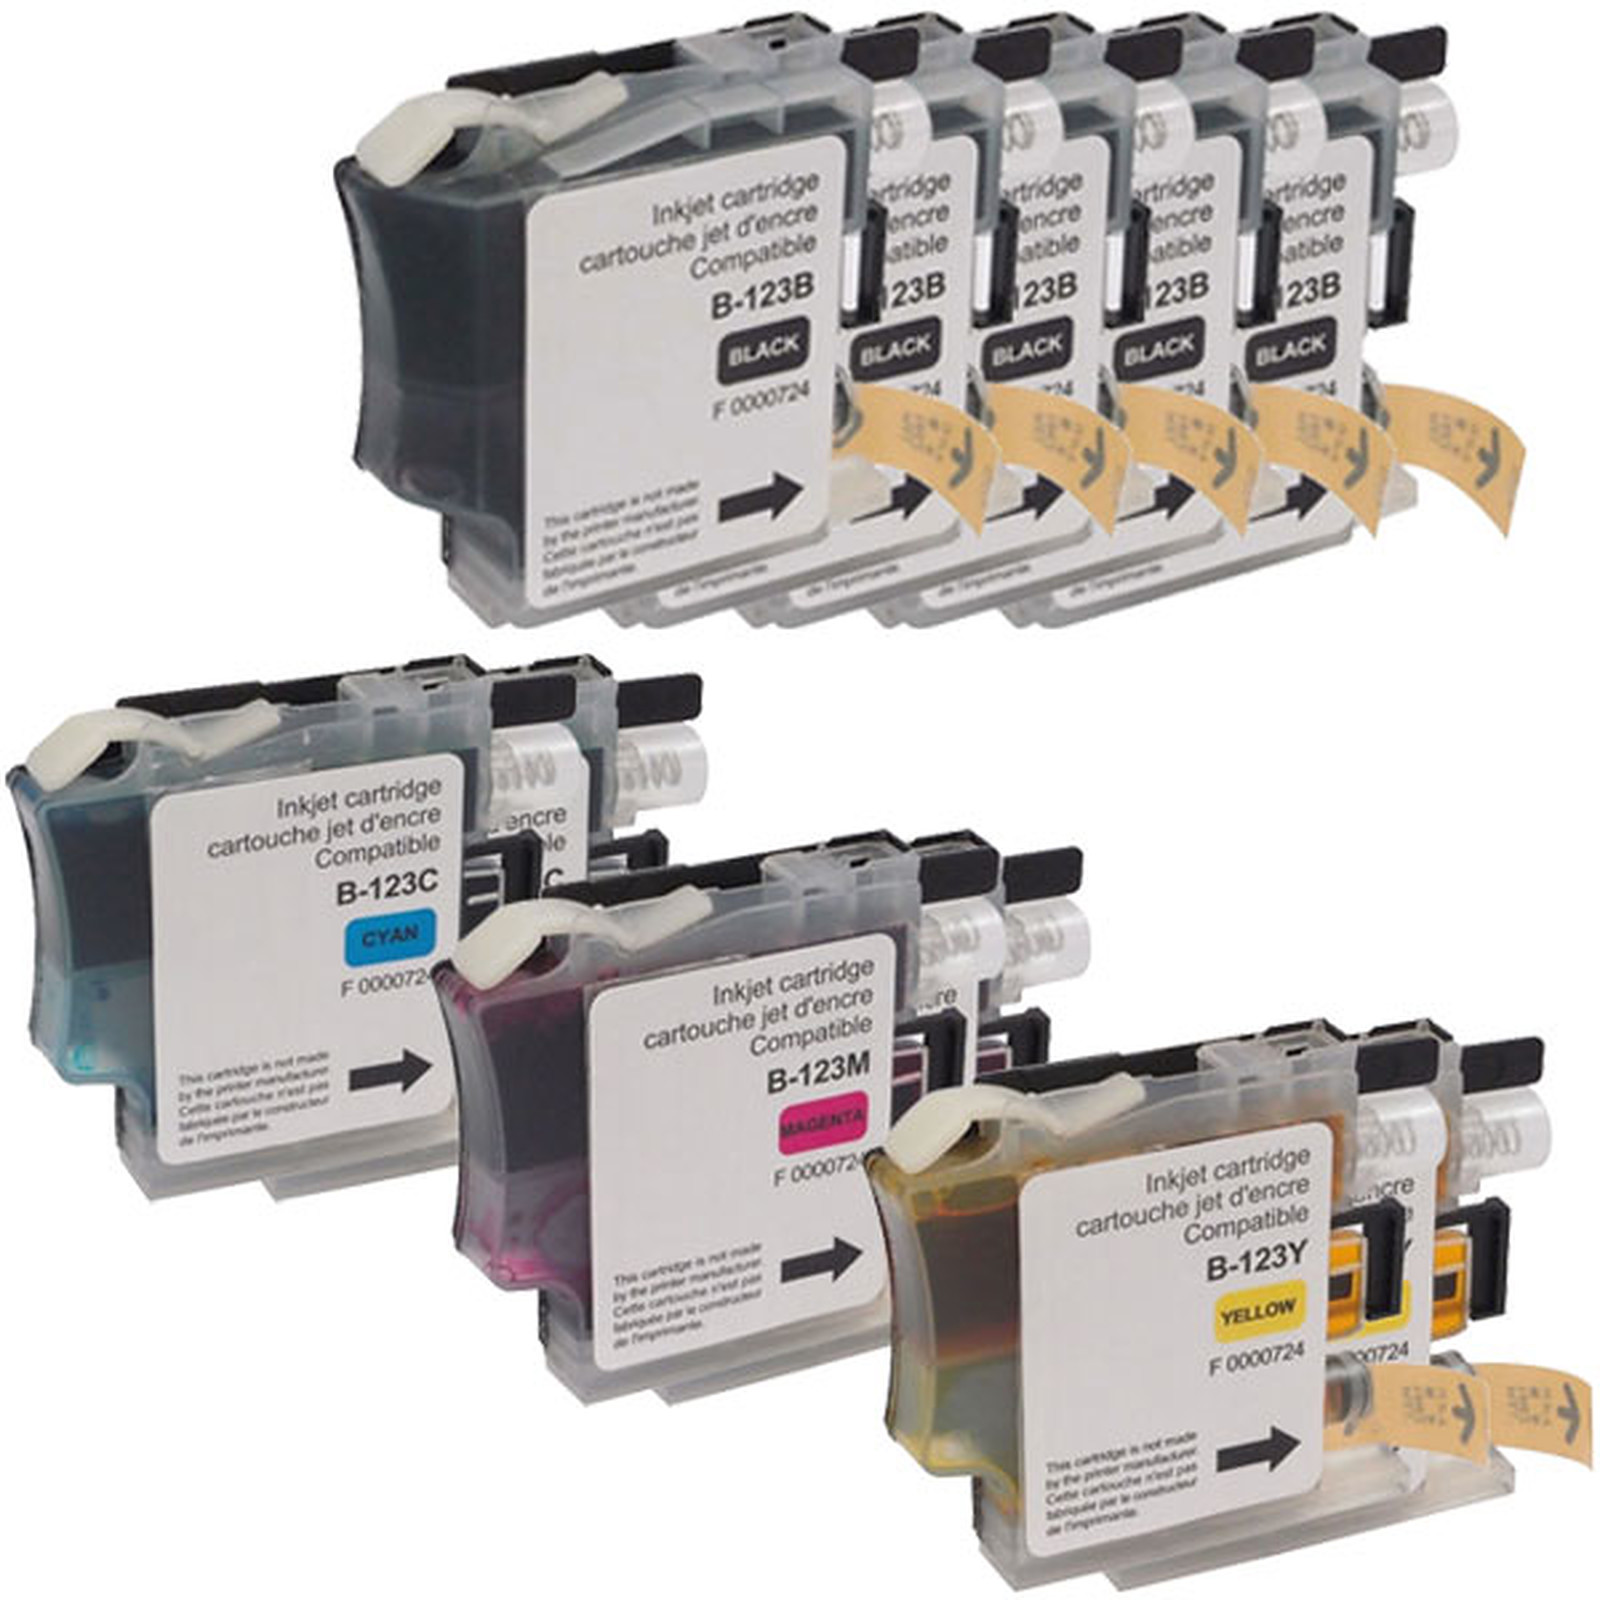 Megapack cartucho compatibles Brother LC121/LC123/LC125 (negro, cyan, magenta et amarillo)